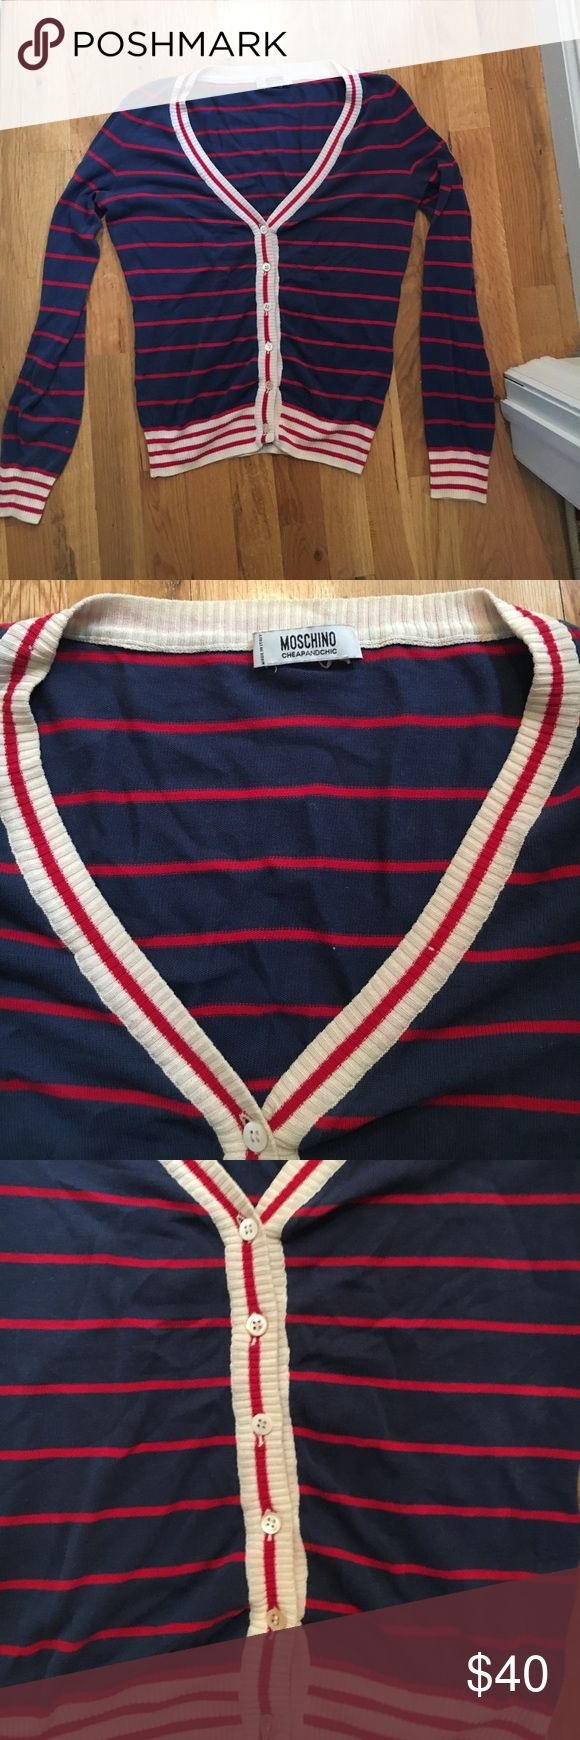 MOSCHINO navy and red striped nautical cardigan MOSCHINO (vintage) blue and red striped French nautical style cardigan with off-white trimming around sleeves, v-neck collar and buttons down the middle Moschino Sweaters Cardigans